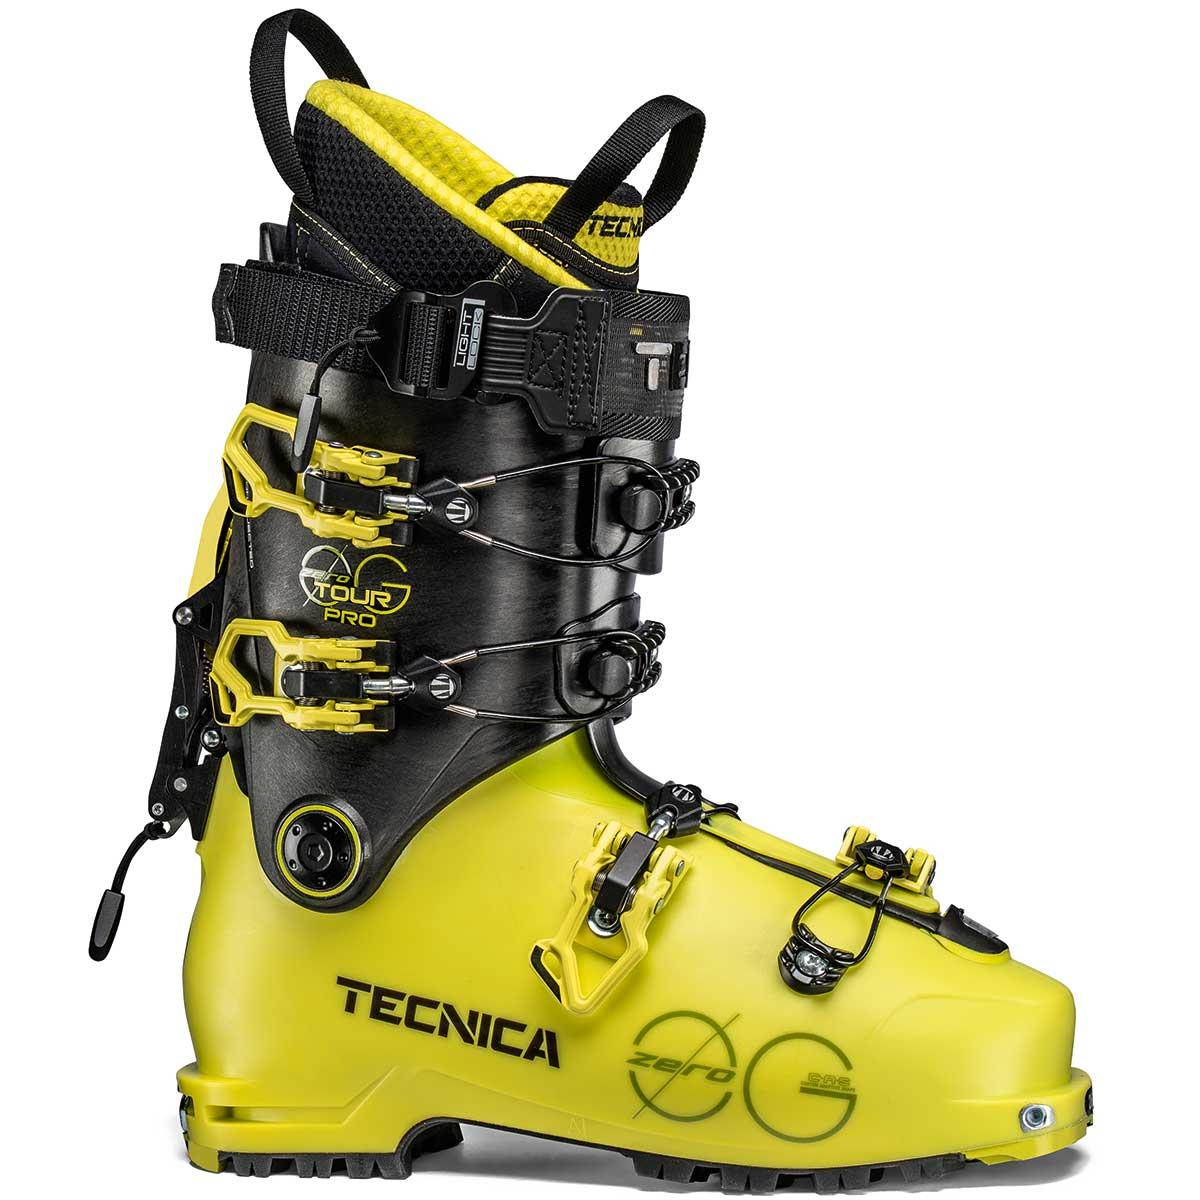 Tecnica Zero G Tour Pro men's ski boot in bright yellow and black